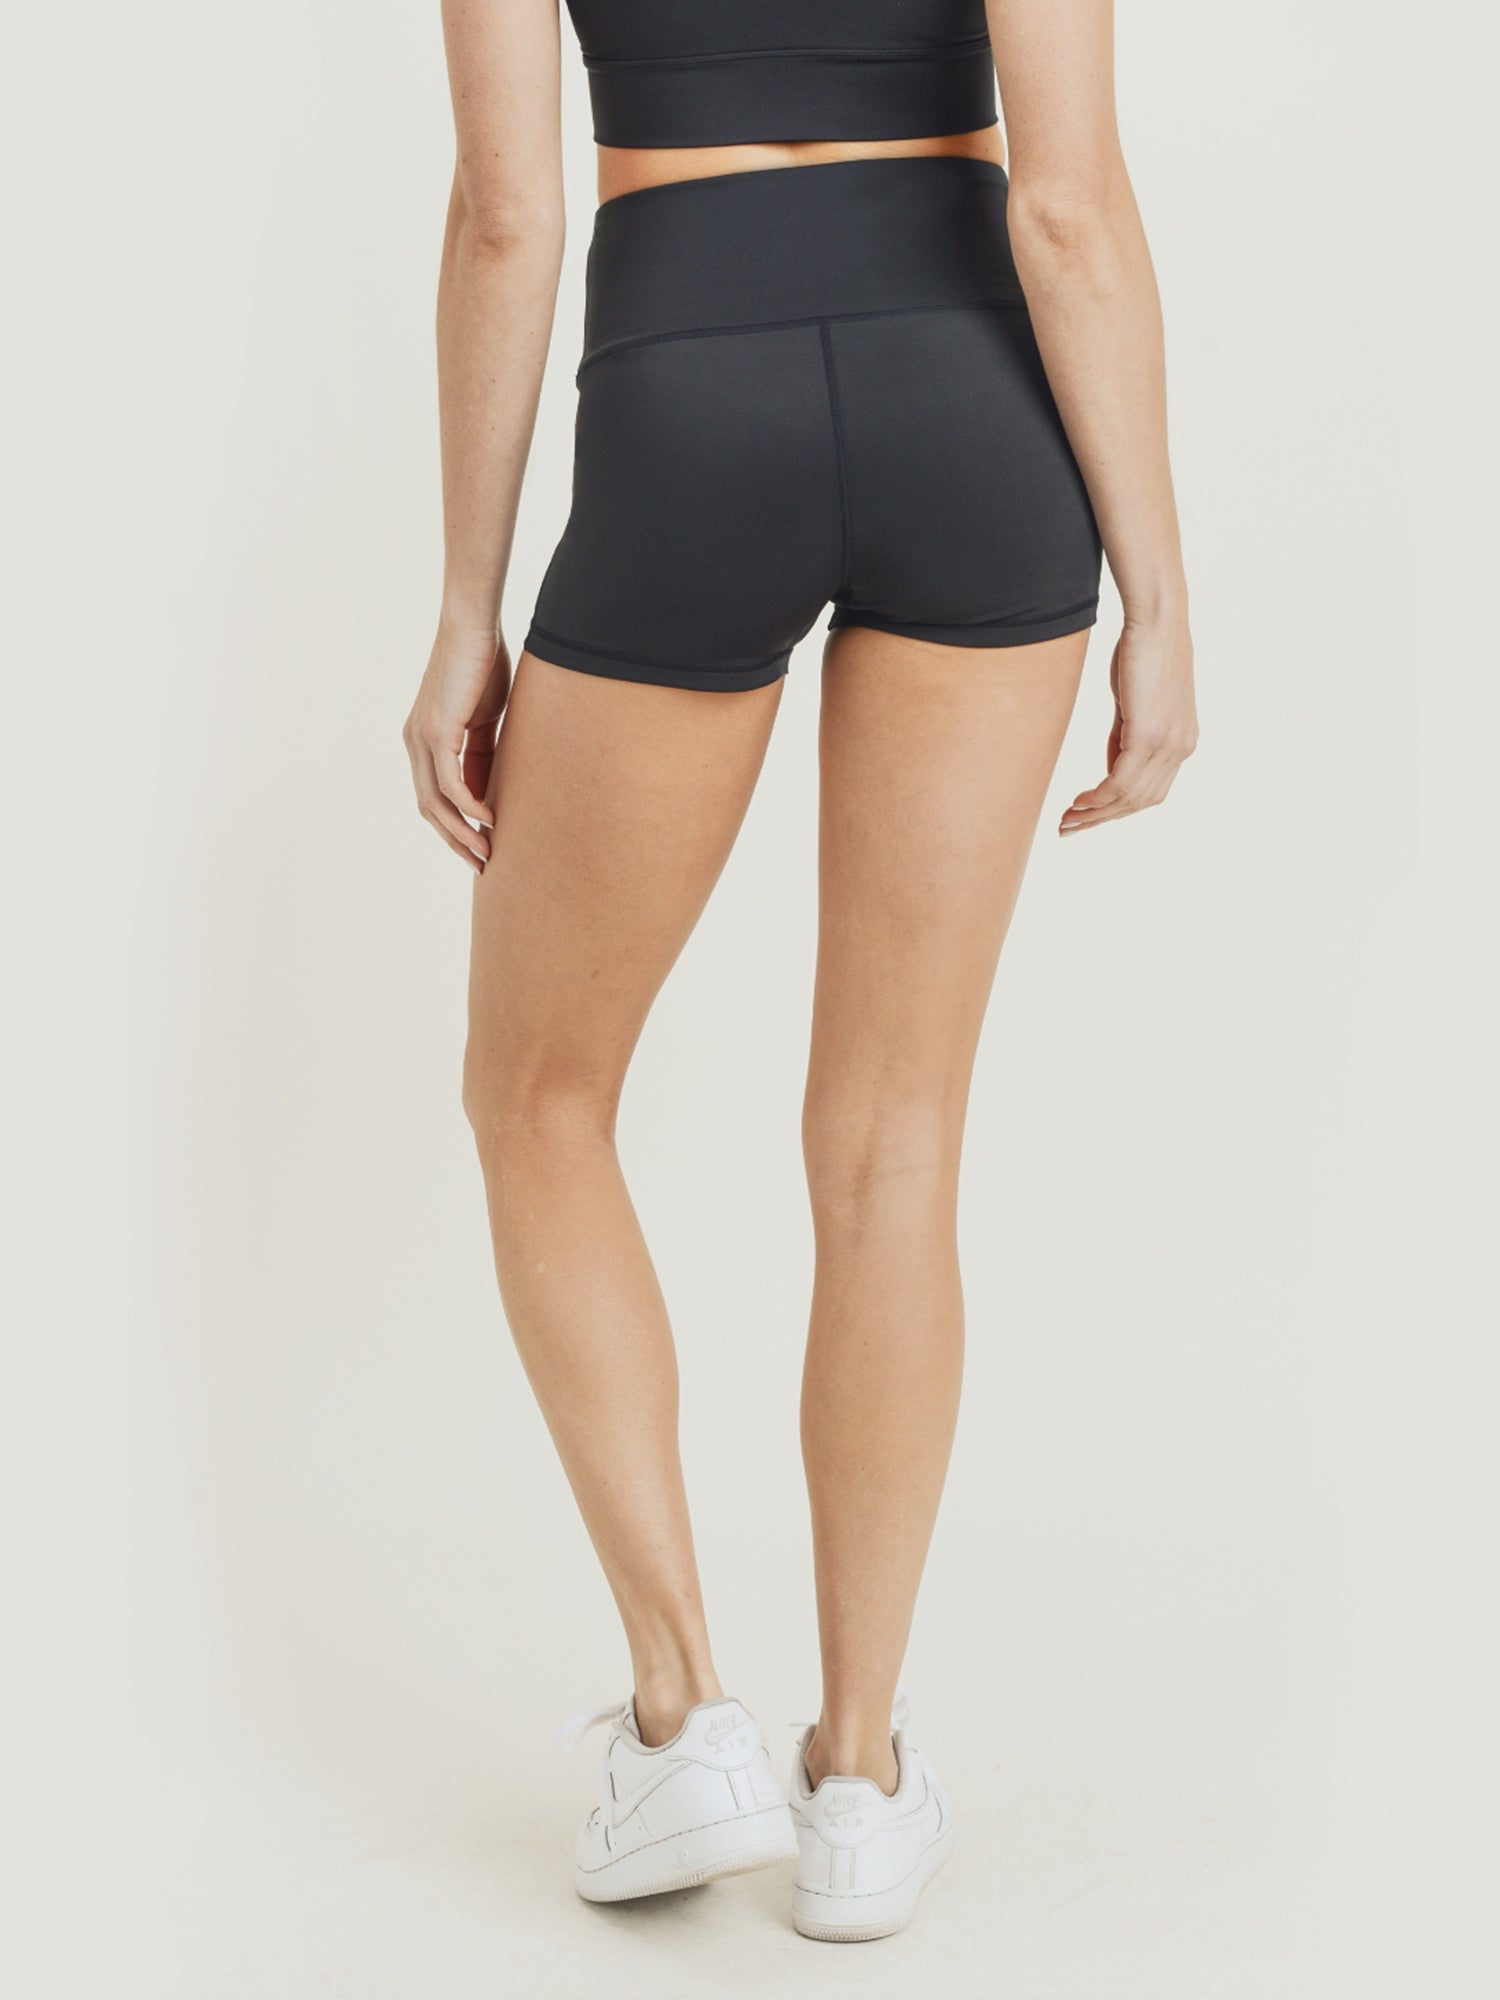 Layla Eco High Waisted Shorts - Black